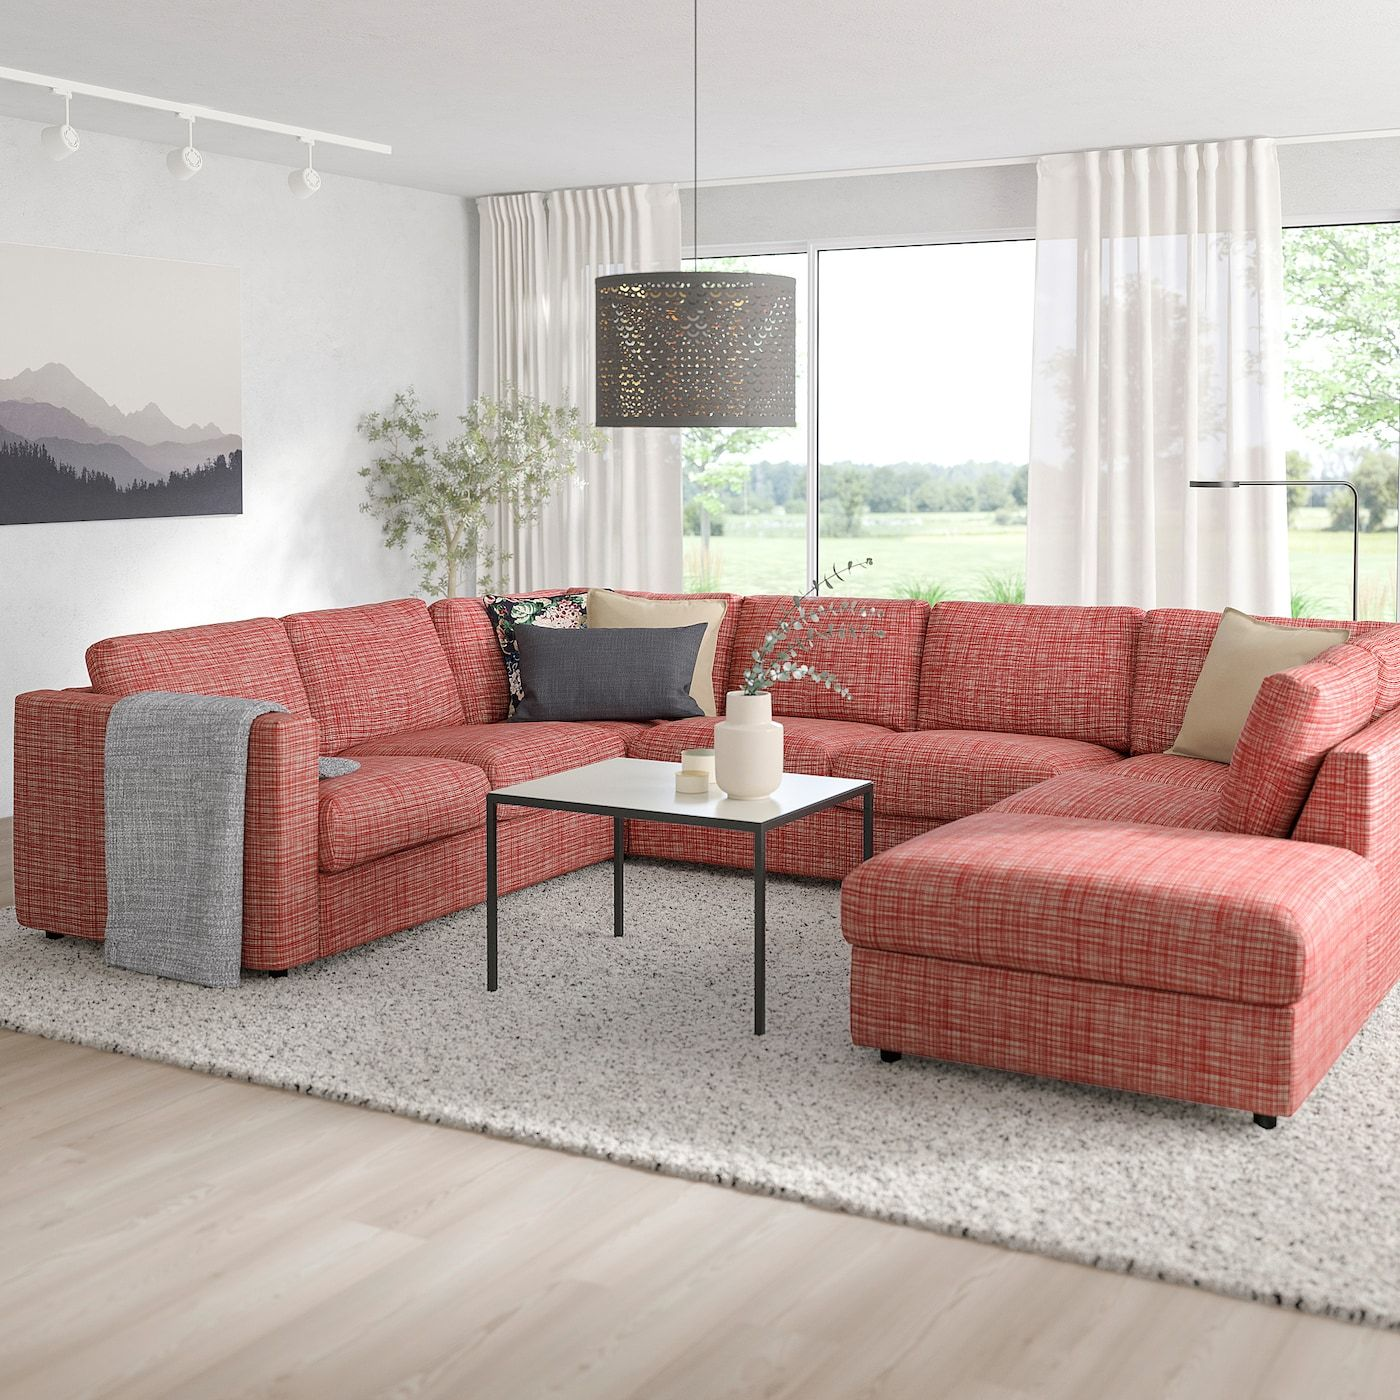 Vimle Sectional 6 Seat With Open End Dalstorp Multicolor Ikea In 2020 Ikea Wohnzimmer U Formiges Sofa Recamiere